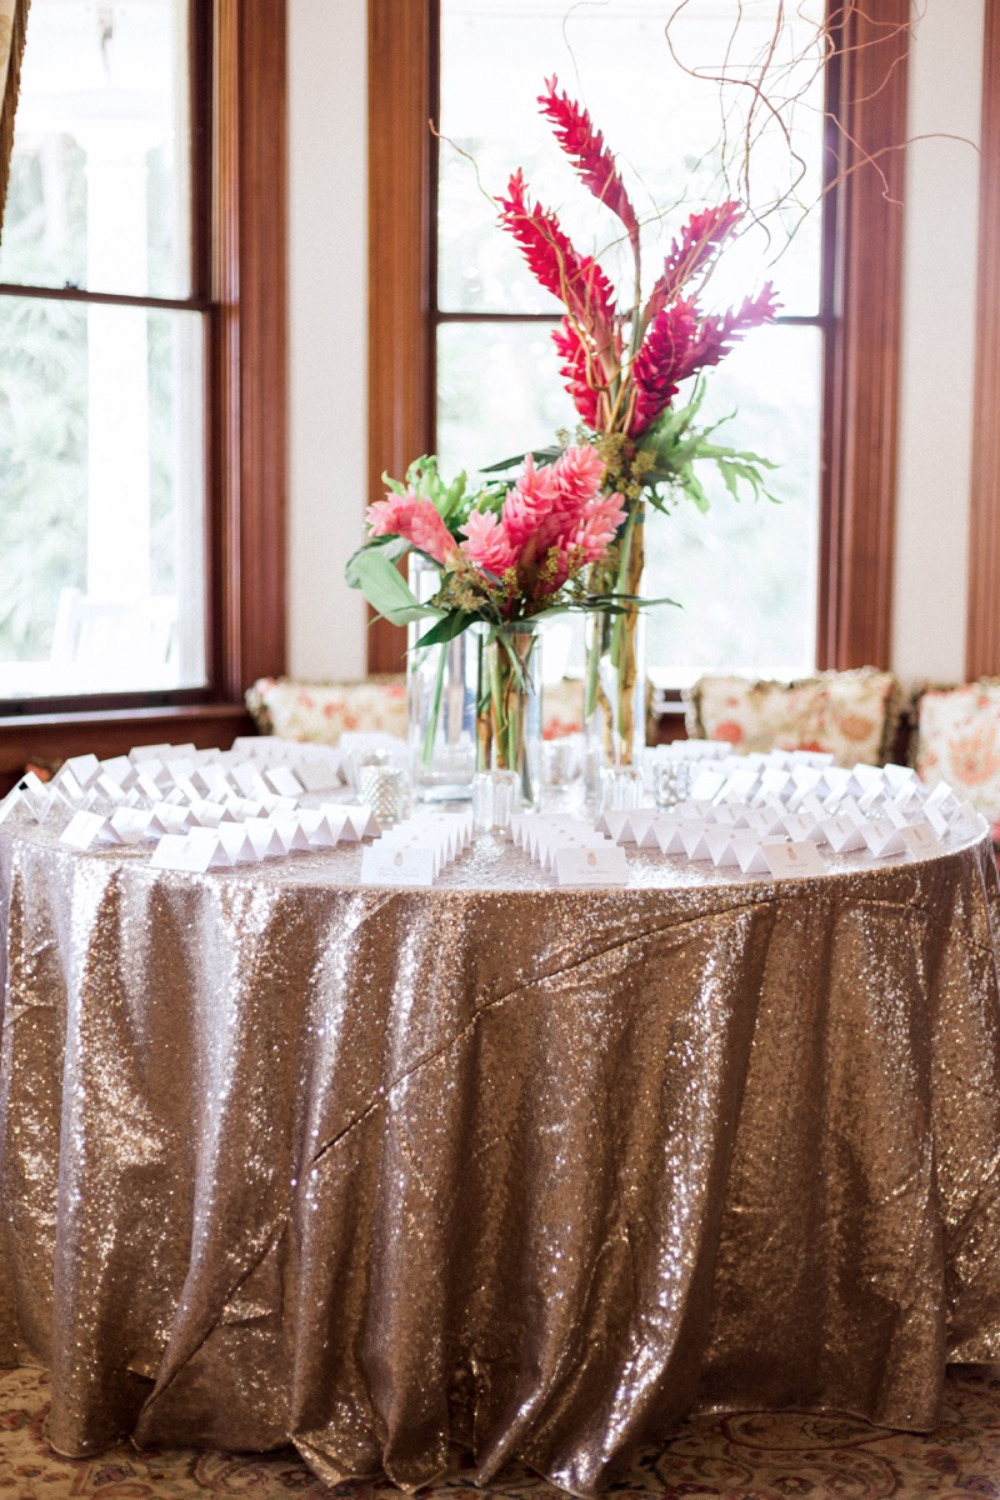 escort card table with flowers